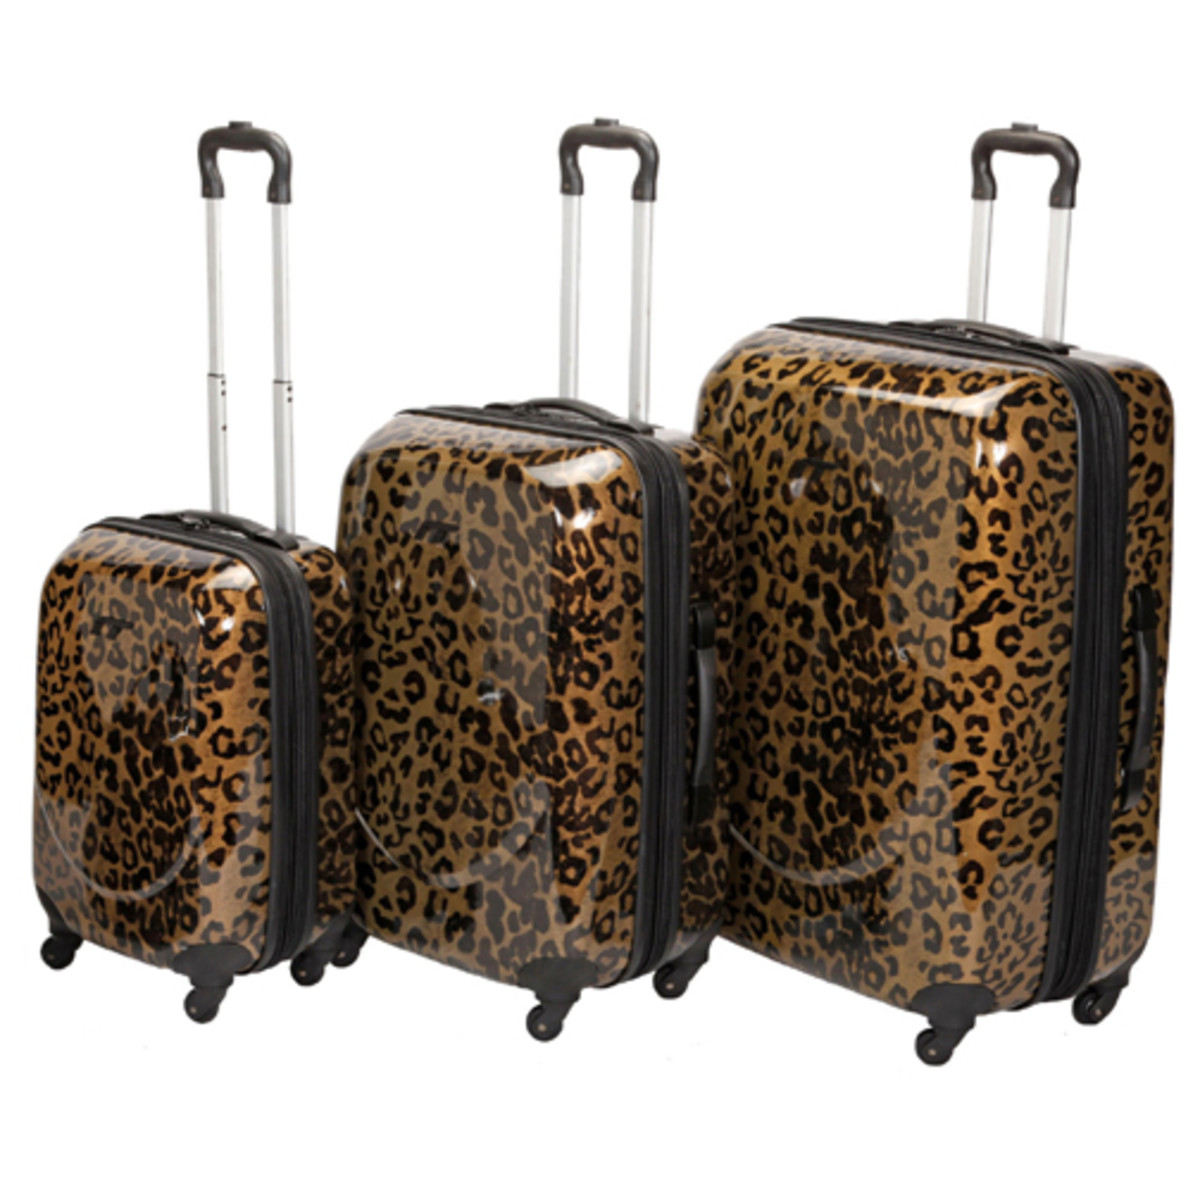 International Traveller Augusta Gold Leopard Pattern - 4 Wheel Spinners http://www.airlineintl.com/catalog/augusta-4-wheel-spinner-gold-leopard-collection